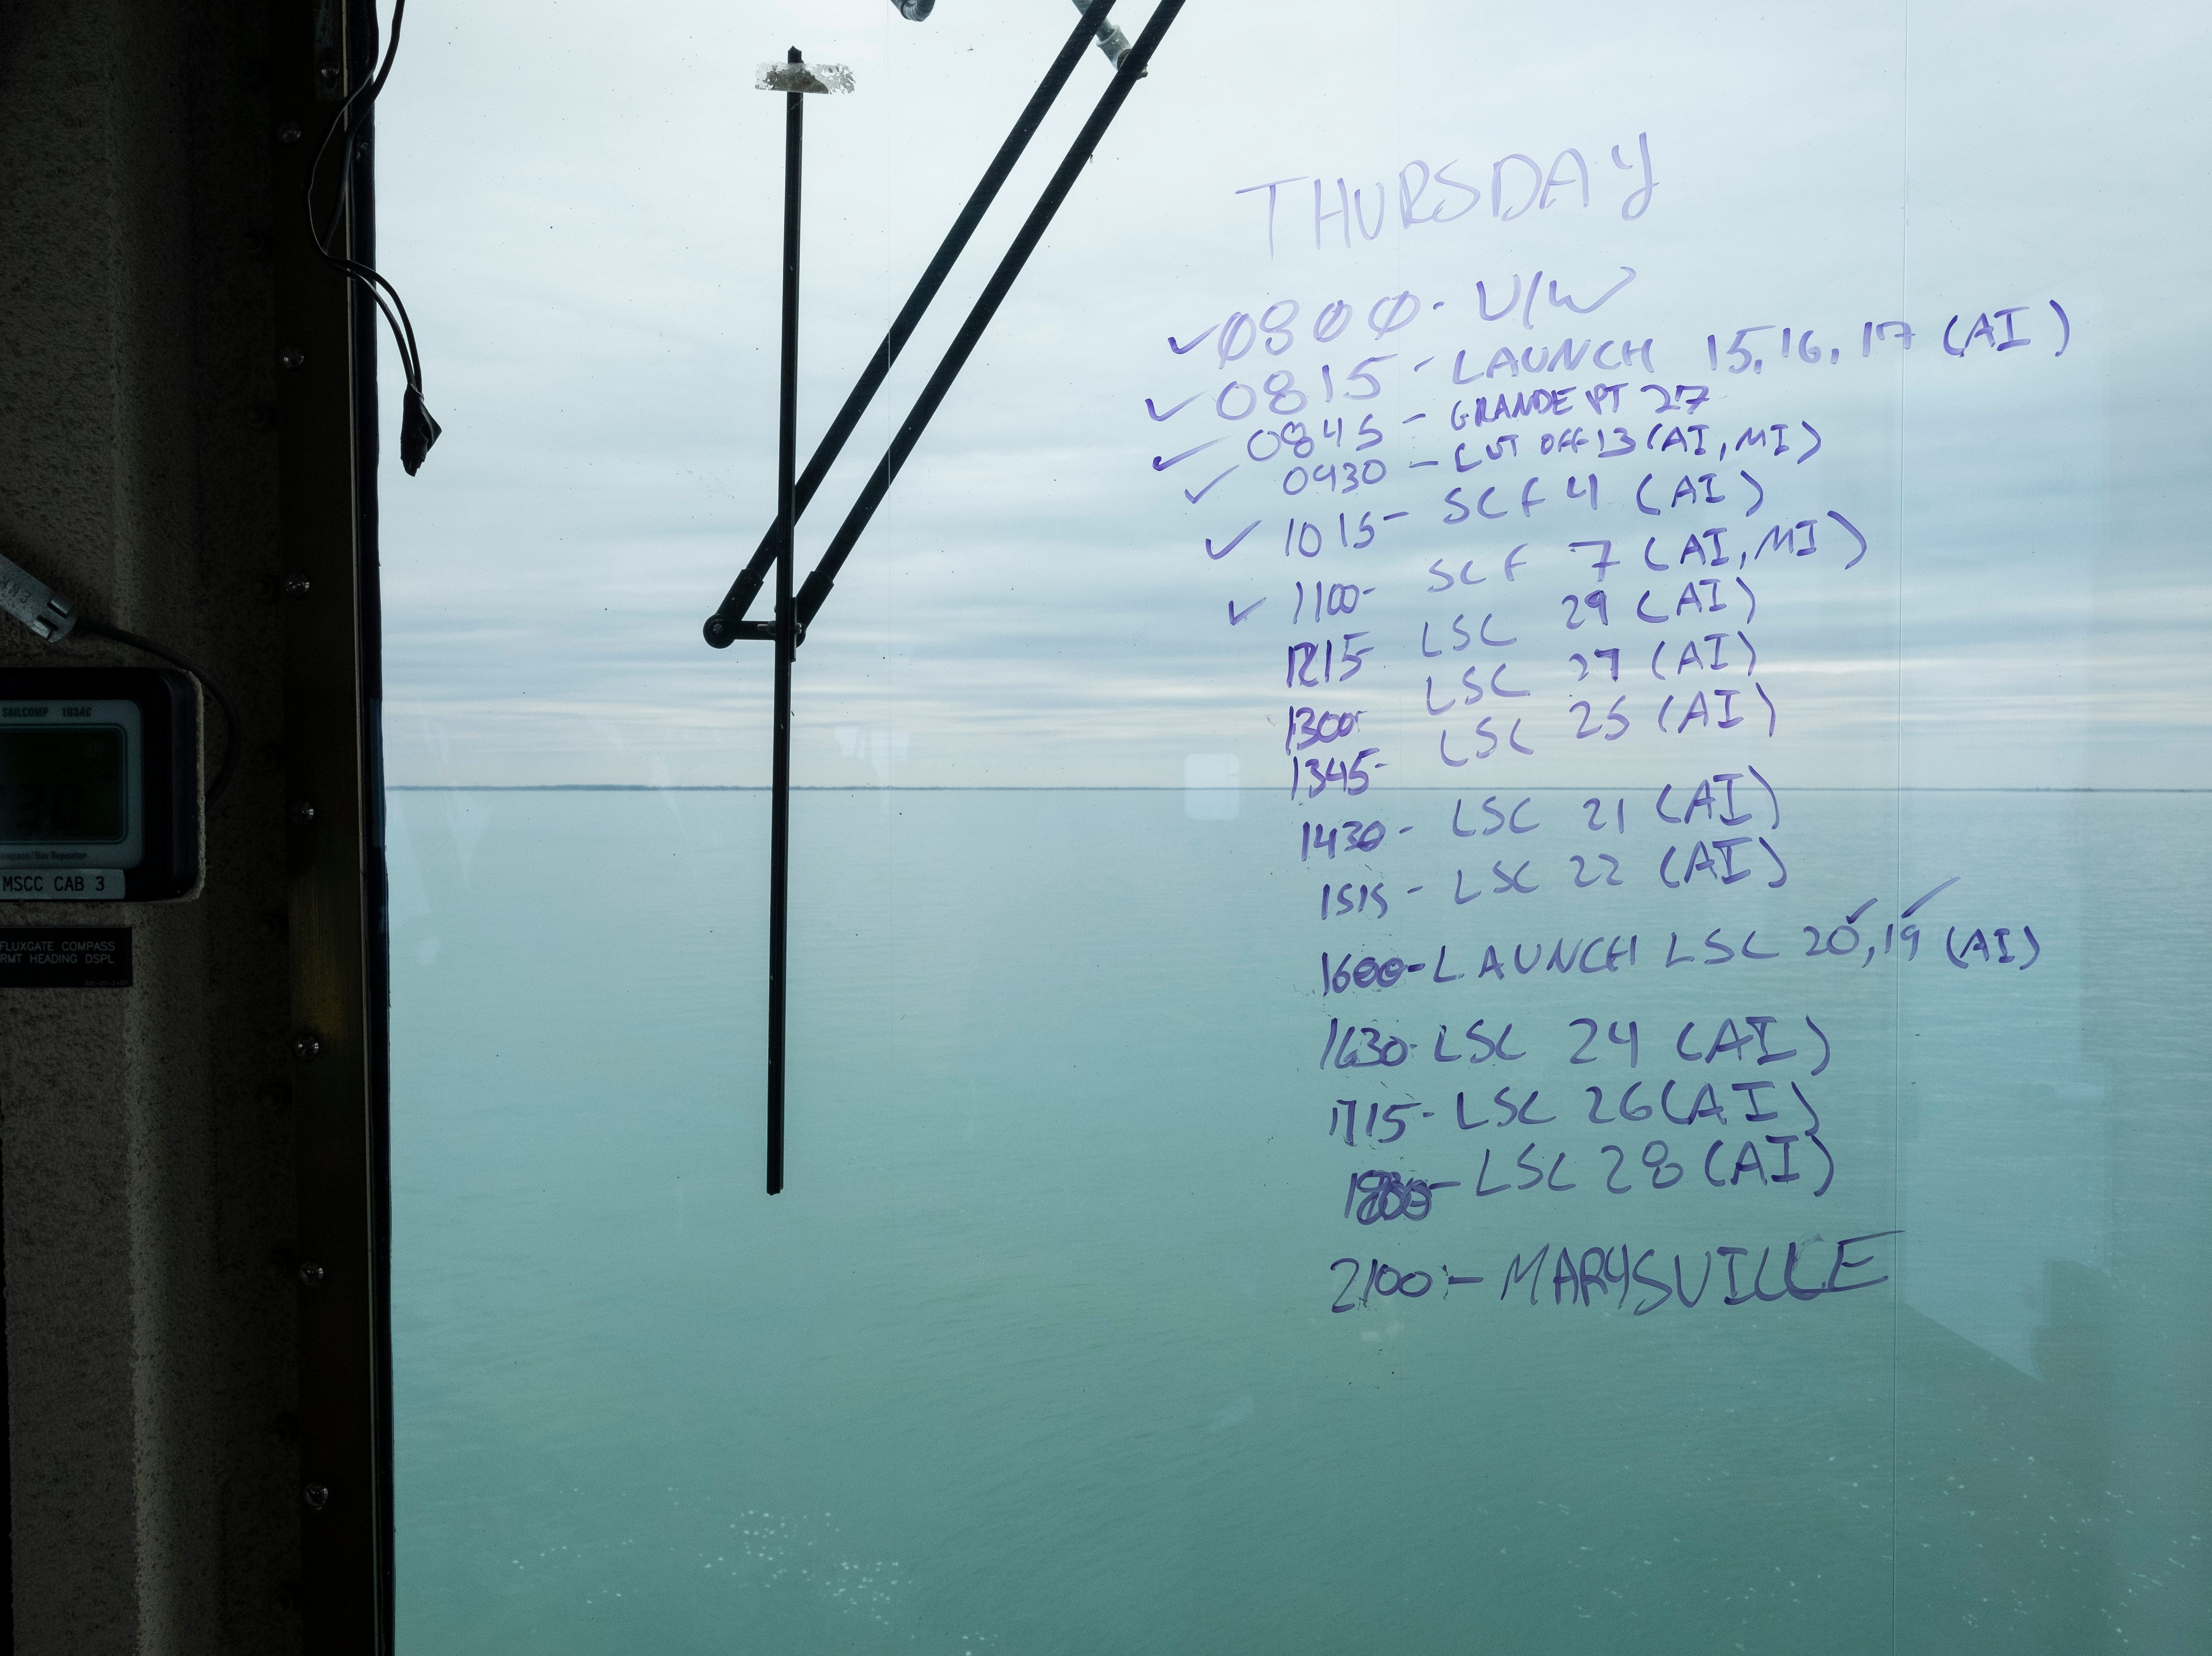 The schedule for the day's operation is written in dry erase marker on a window on the USCGC Hollyhock's bridge.